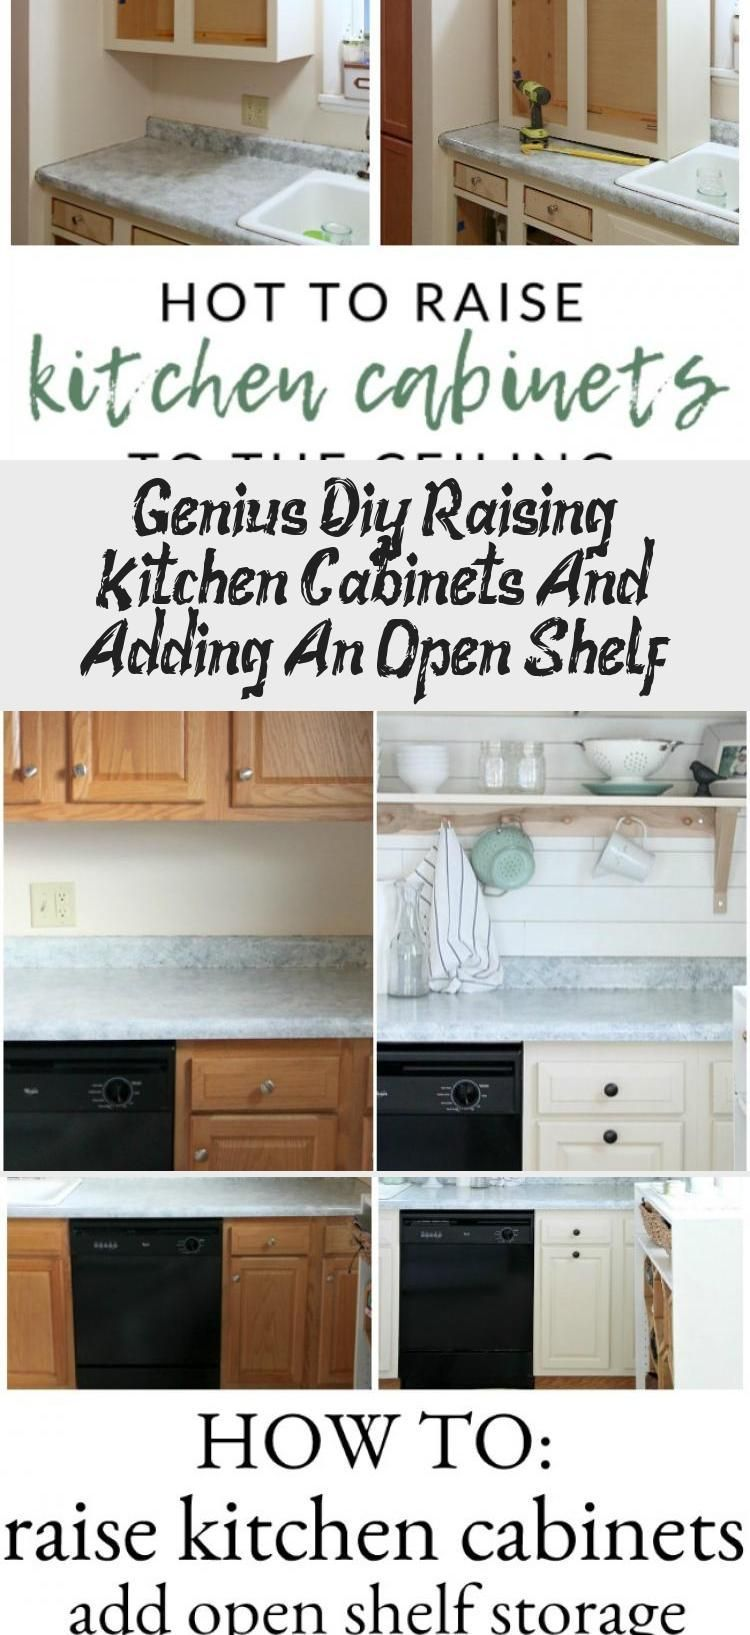 Genius Diy Raising Kitchen Cabinets And Adding An Open Shelf Decor In 2020 Open Kitchen Shelves Kitchen Cabinets Small Kitchen Storage Diy